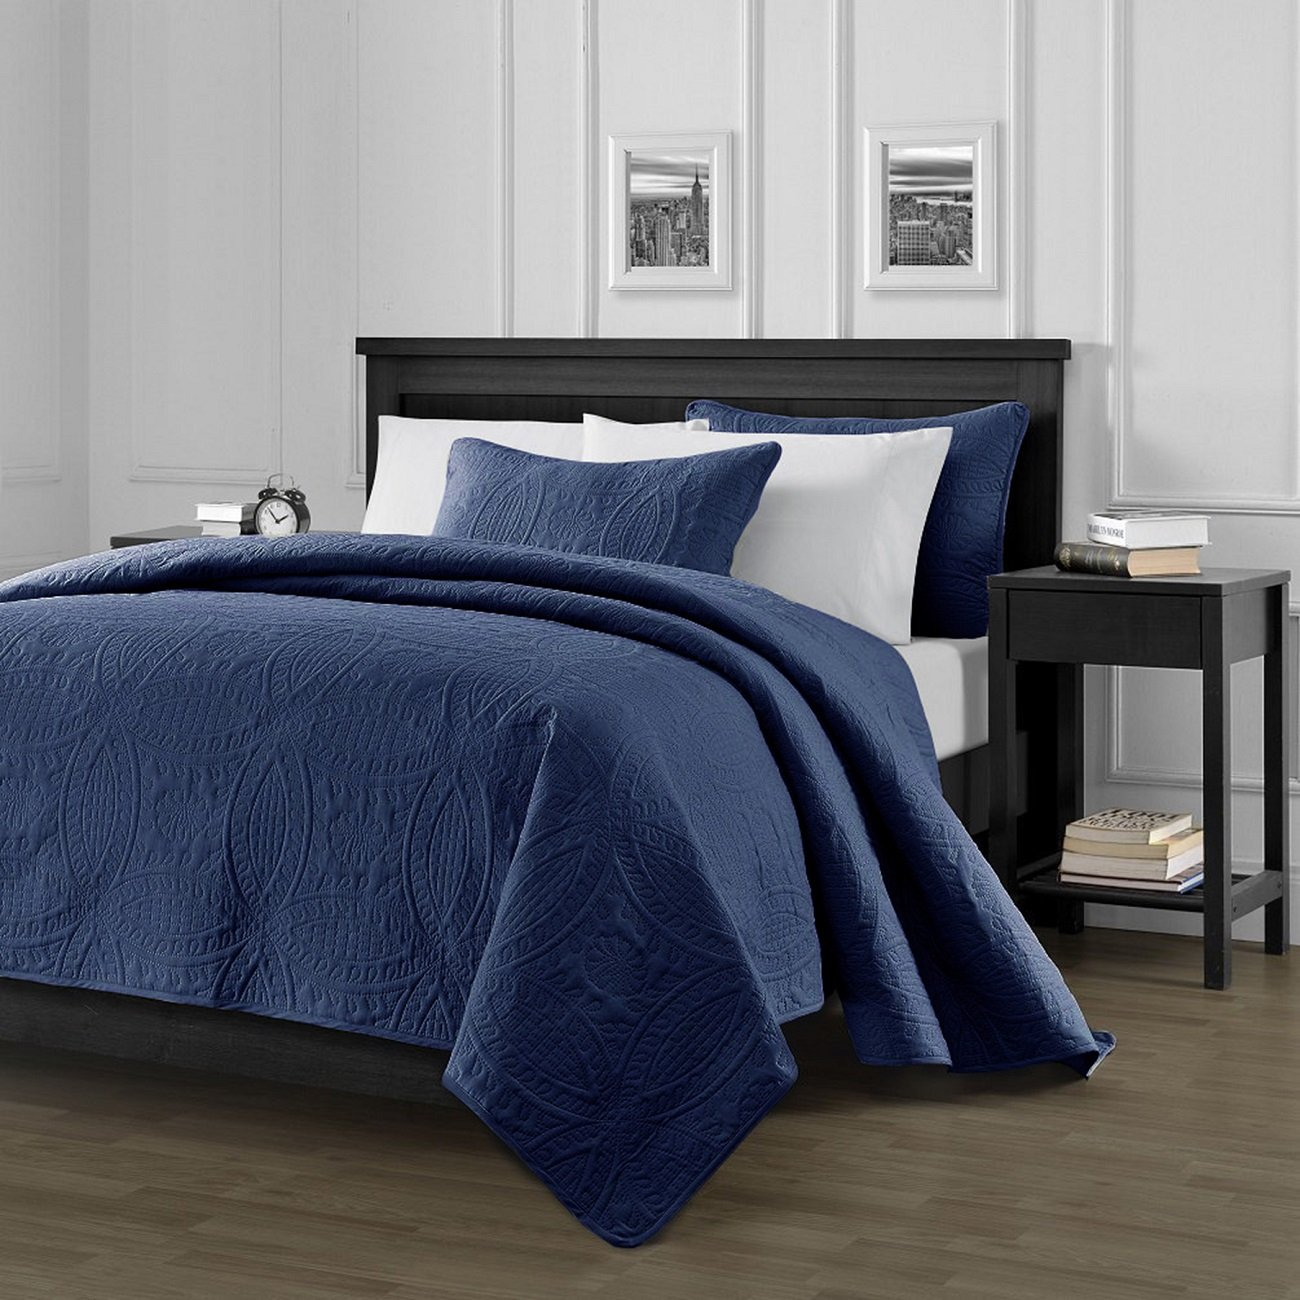 Chezmoi Collection Austin 3-piece Oversized Bedspread Coverlet Set (Queen, Navy